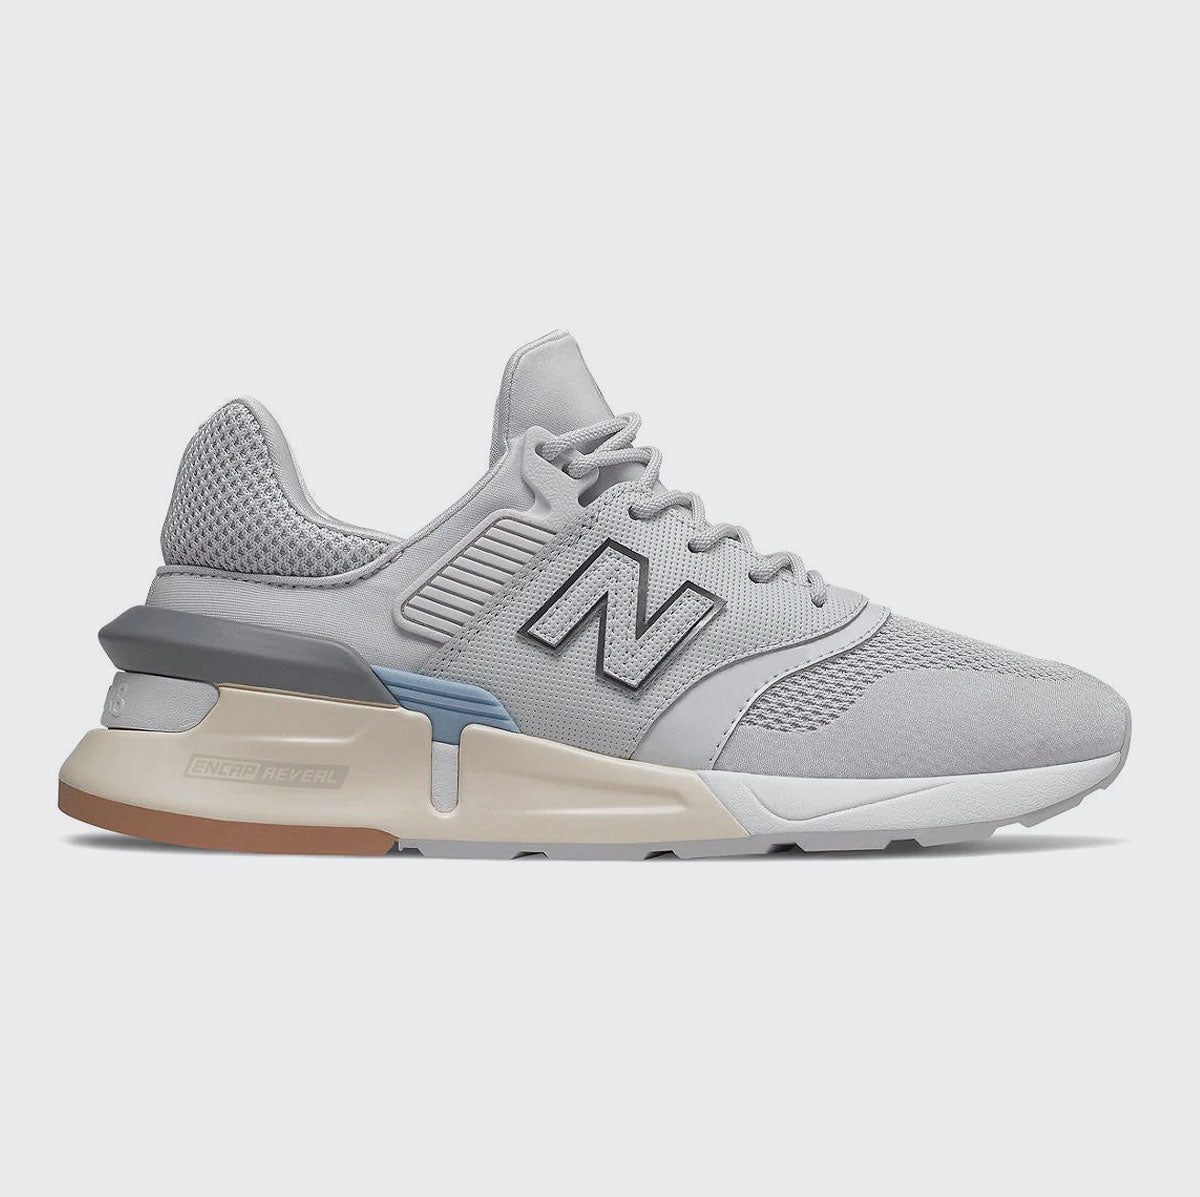 Womens 997H Sneaker | Shop New Balance online at GOALS Arrowtown NZ